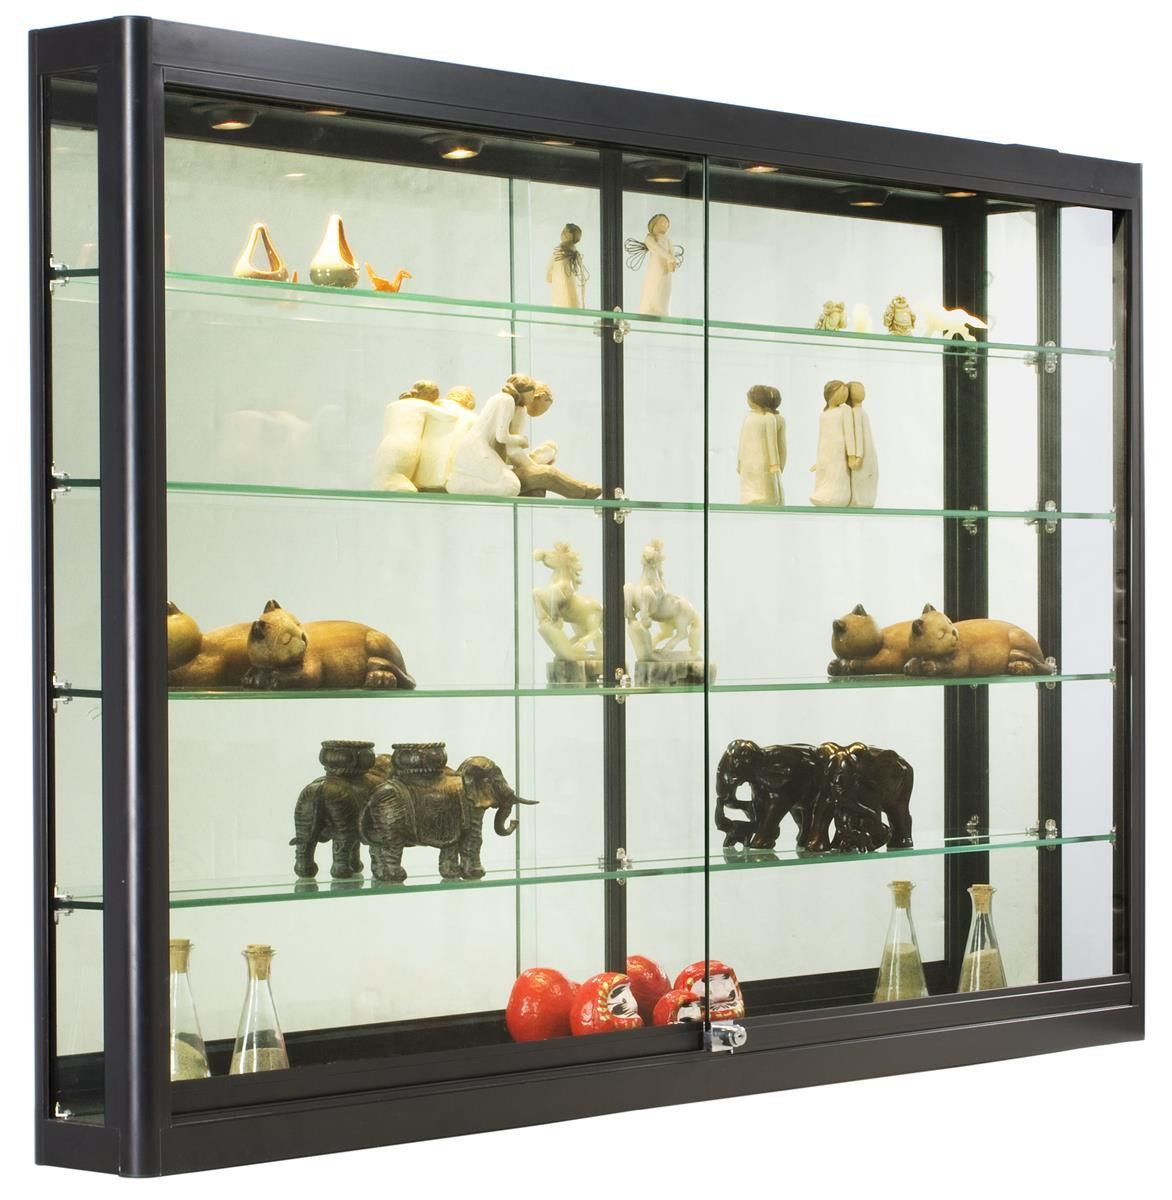 2019 Glass Display Cabinets For Collectibles Kitchen Cabinet Inserts Ideas Che Glass Cabinets Display Wall Mounted Display Cabinets Wall Mounted Display Case